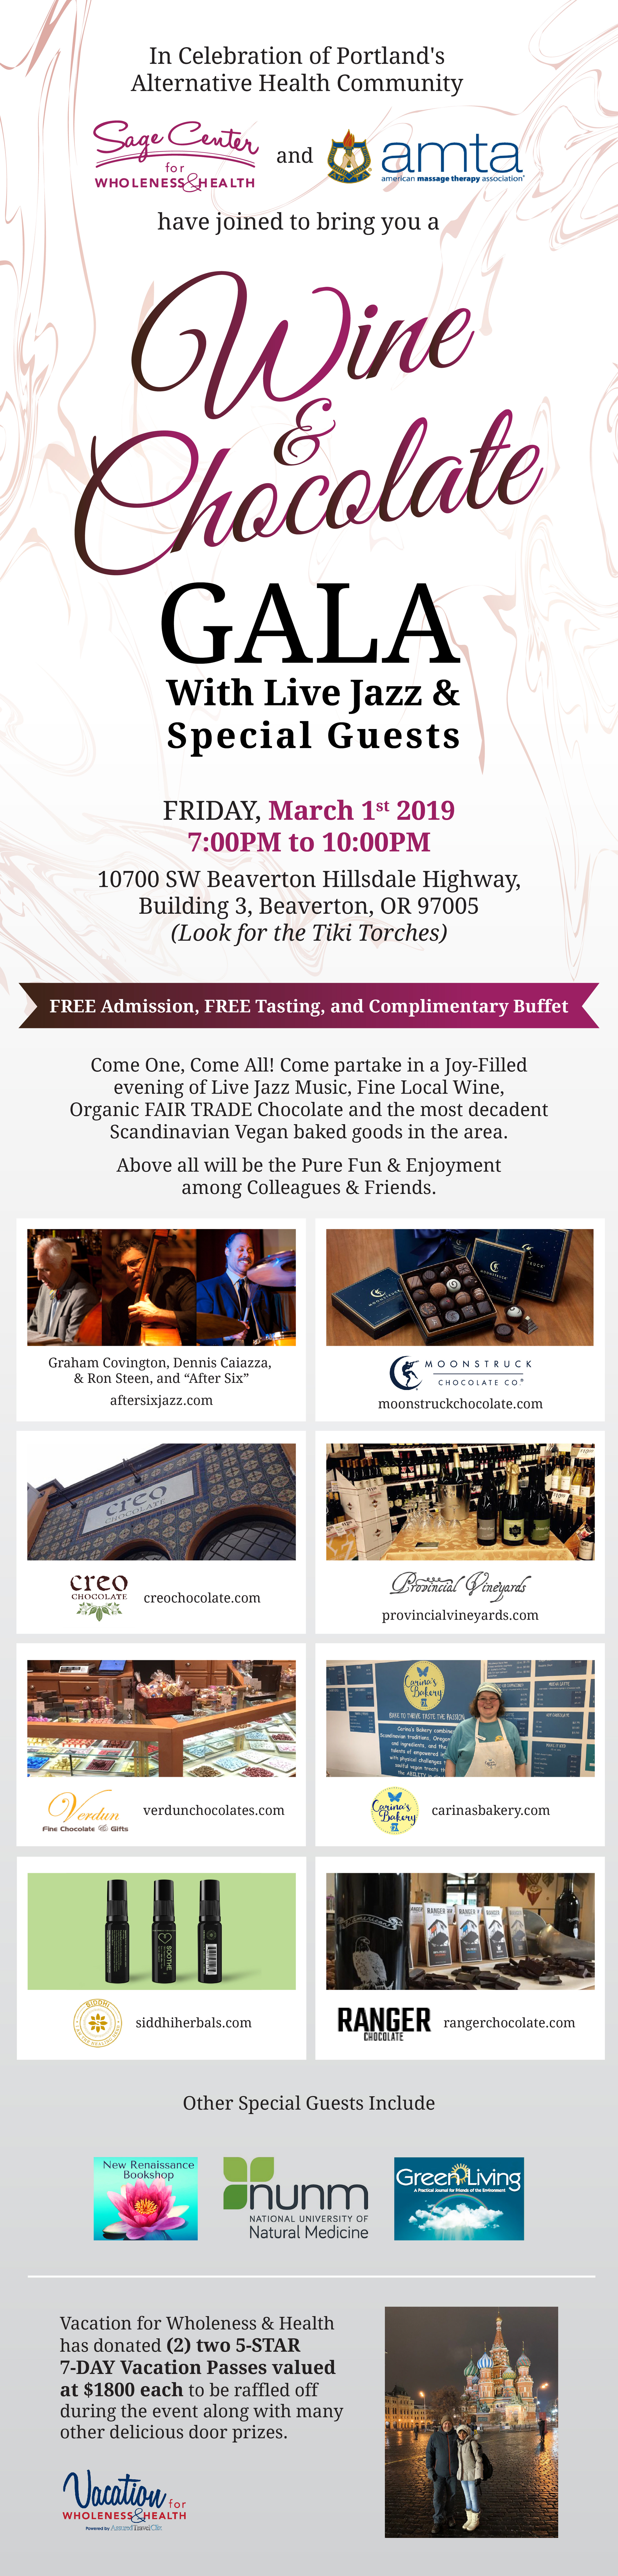 Wine & Chocolate Gala with Live Jazz and Special Guests